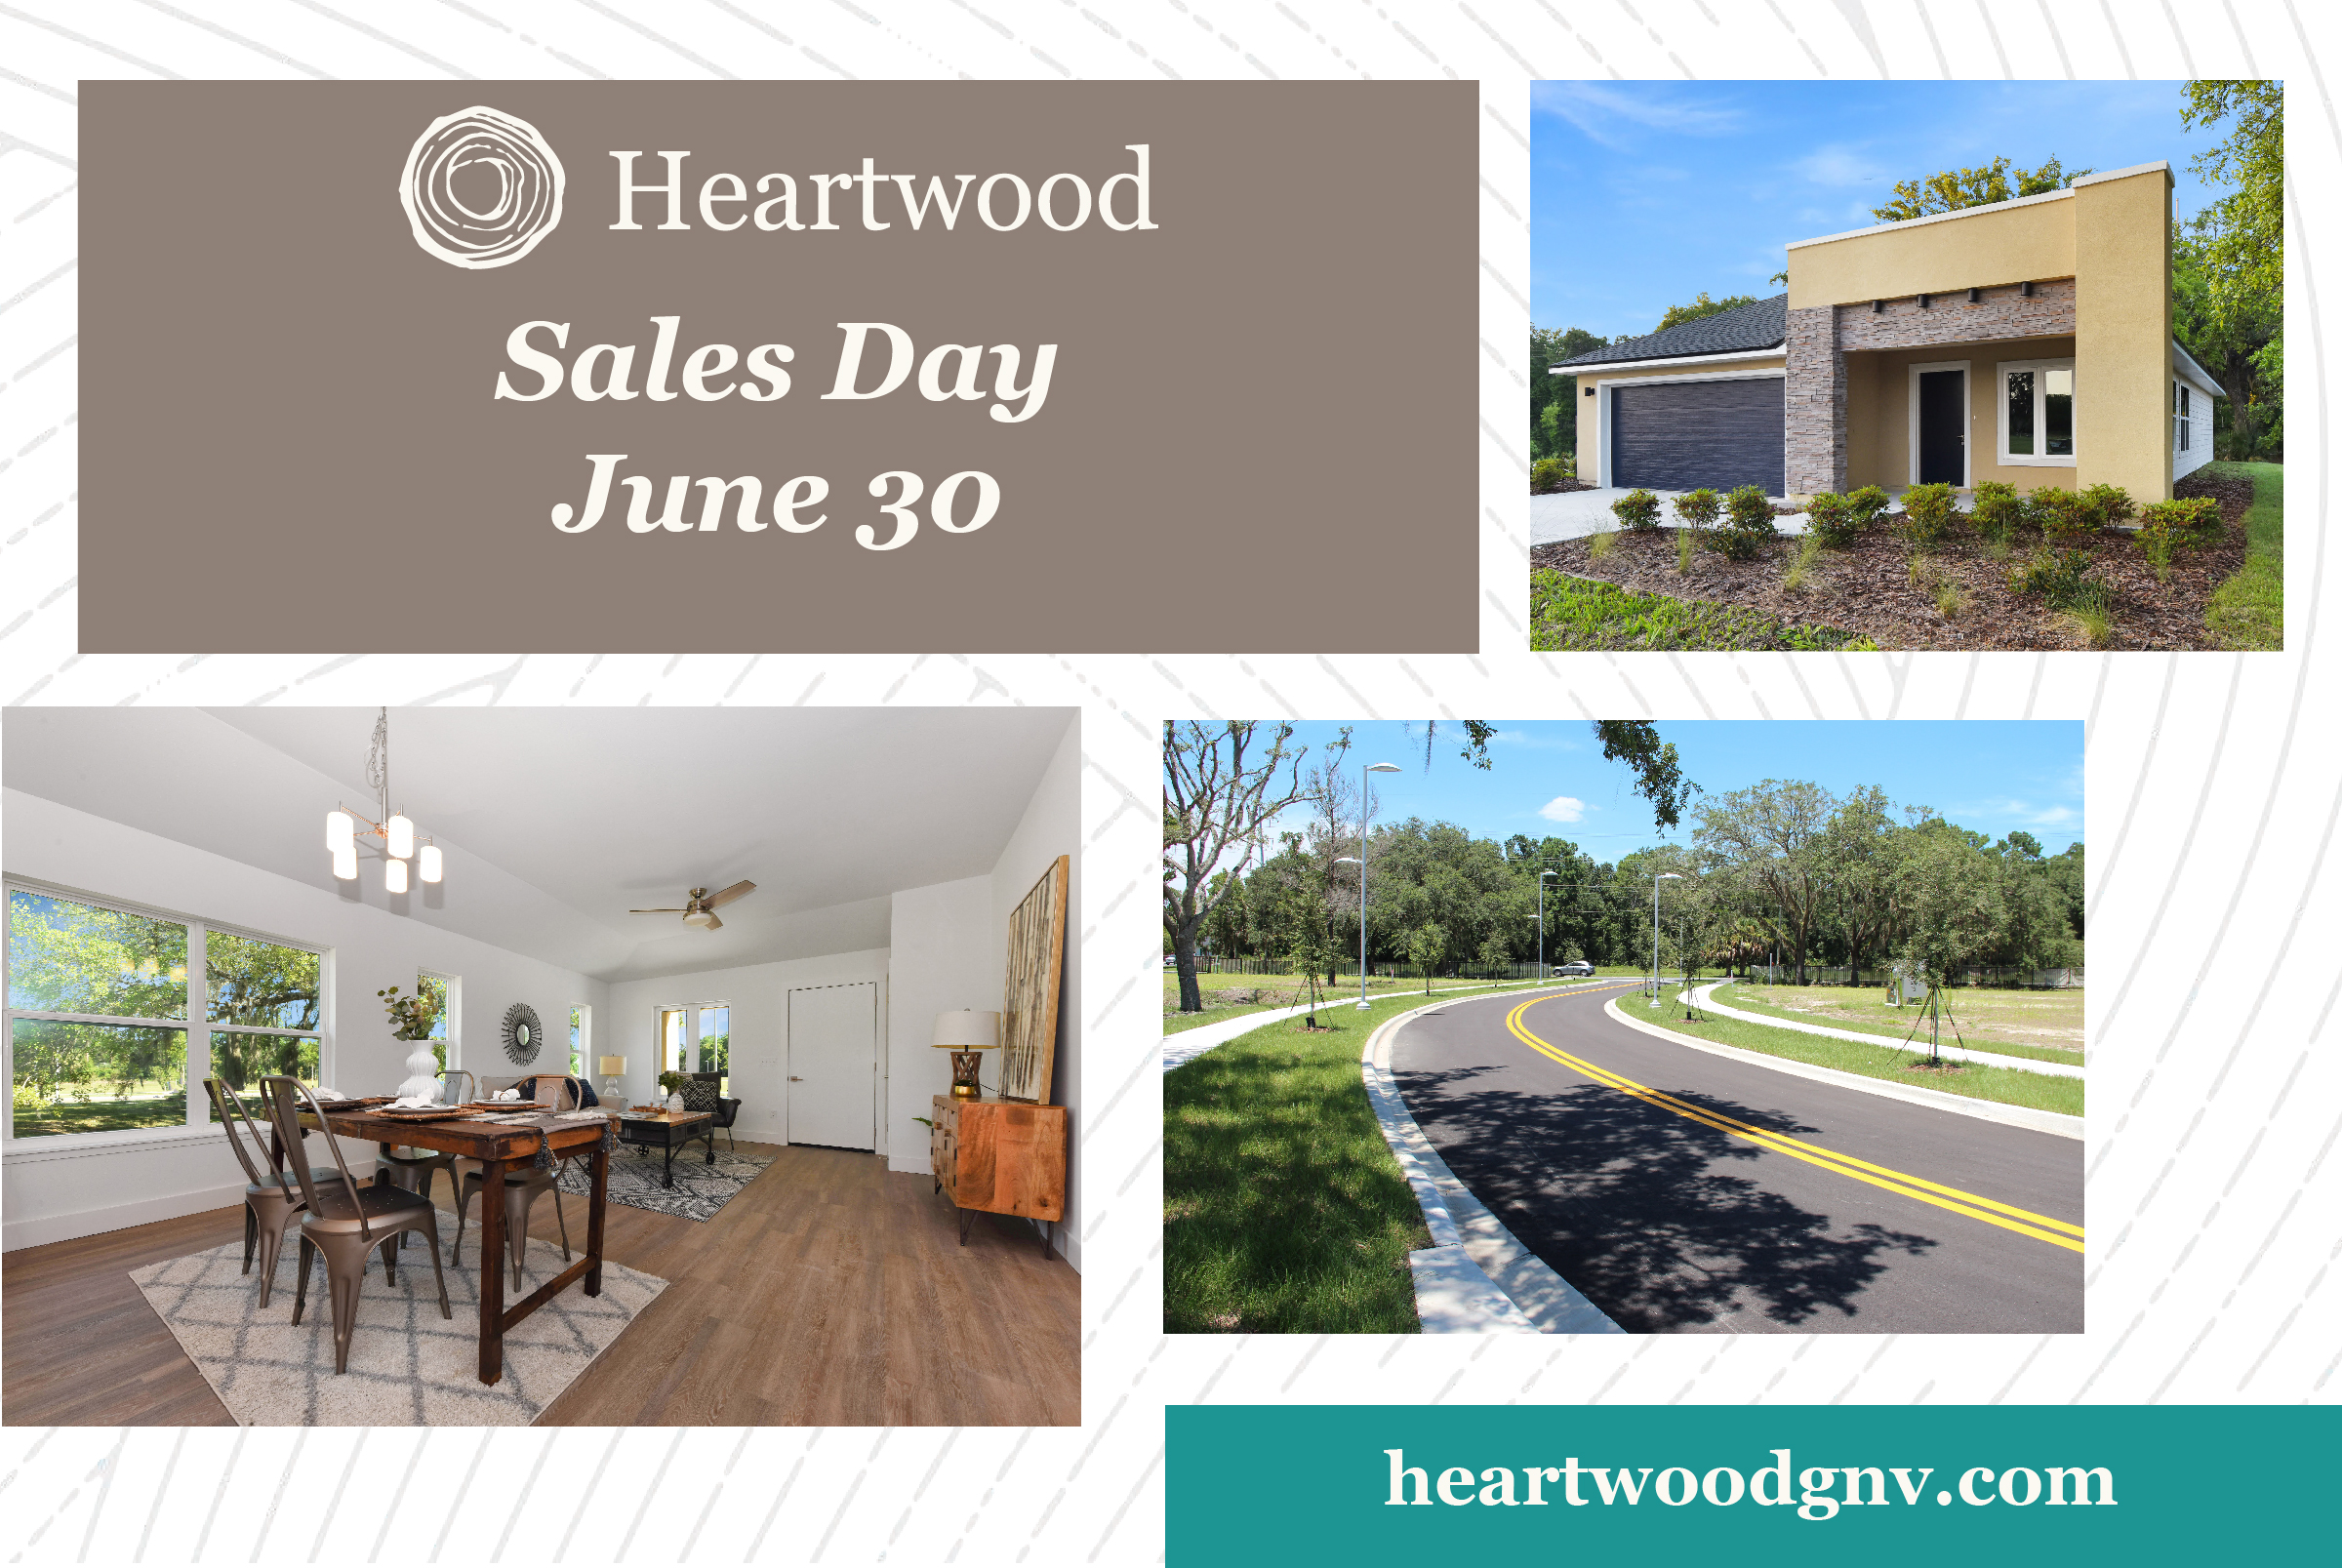 Heartwood Sales Day is June 30